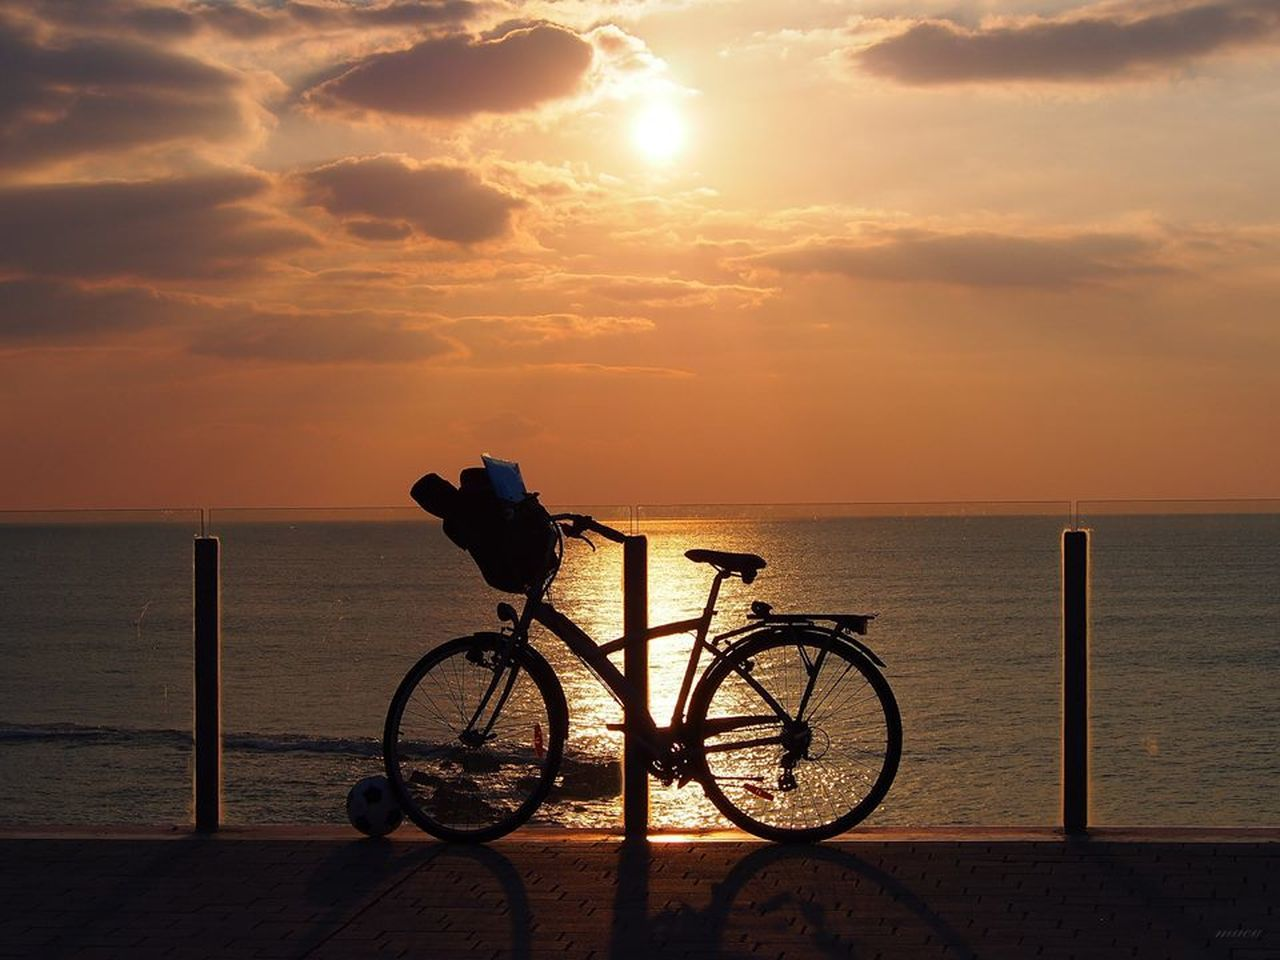 sea, sunset, water, horizon over water, silhouette, nature, sky, bicycle, tranquil scene, beach, scenics, beauty in nature, one person, outdoors, day, people